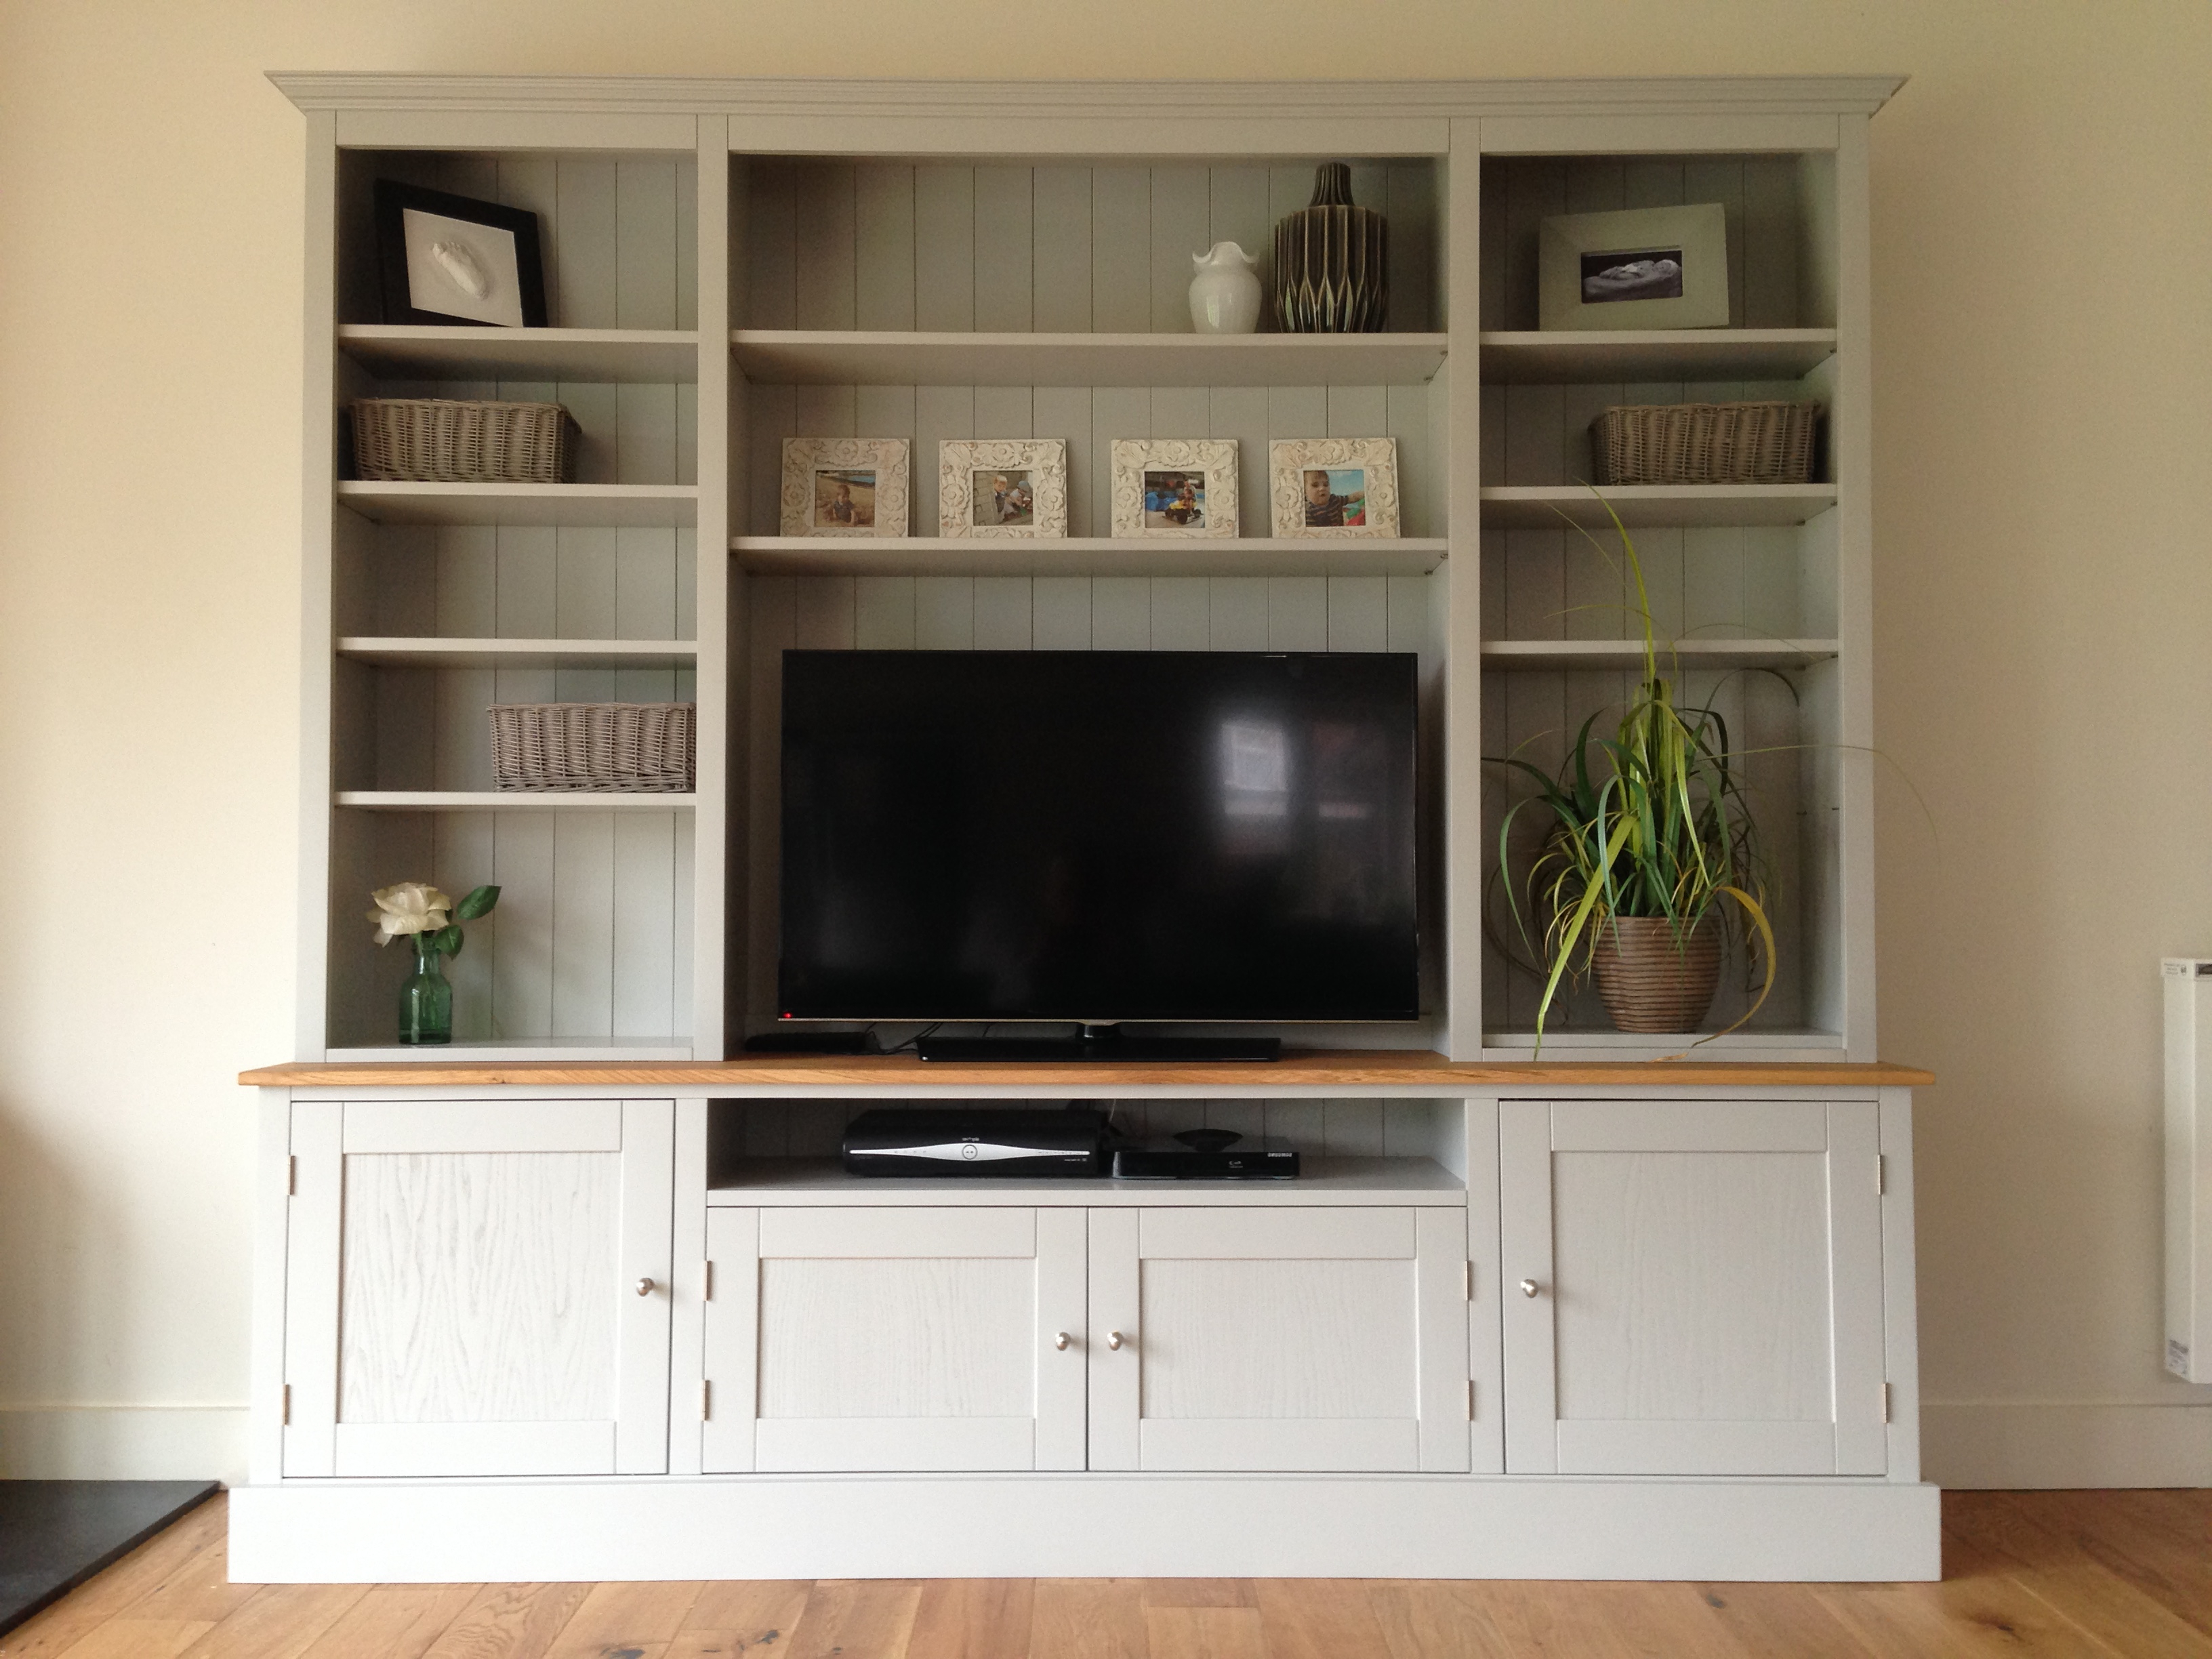 Georgeous 7ft Painted Tv Unit / Dresser – Nest At Number 20 Inside Most Recently Released White Painted Tv Cabinets (View 11 of 20)